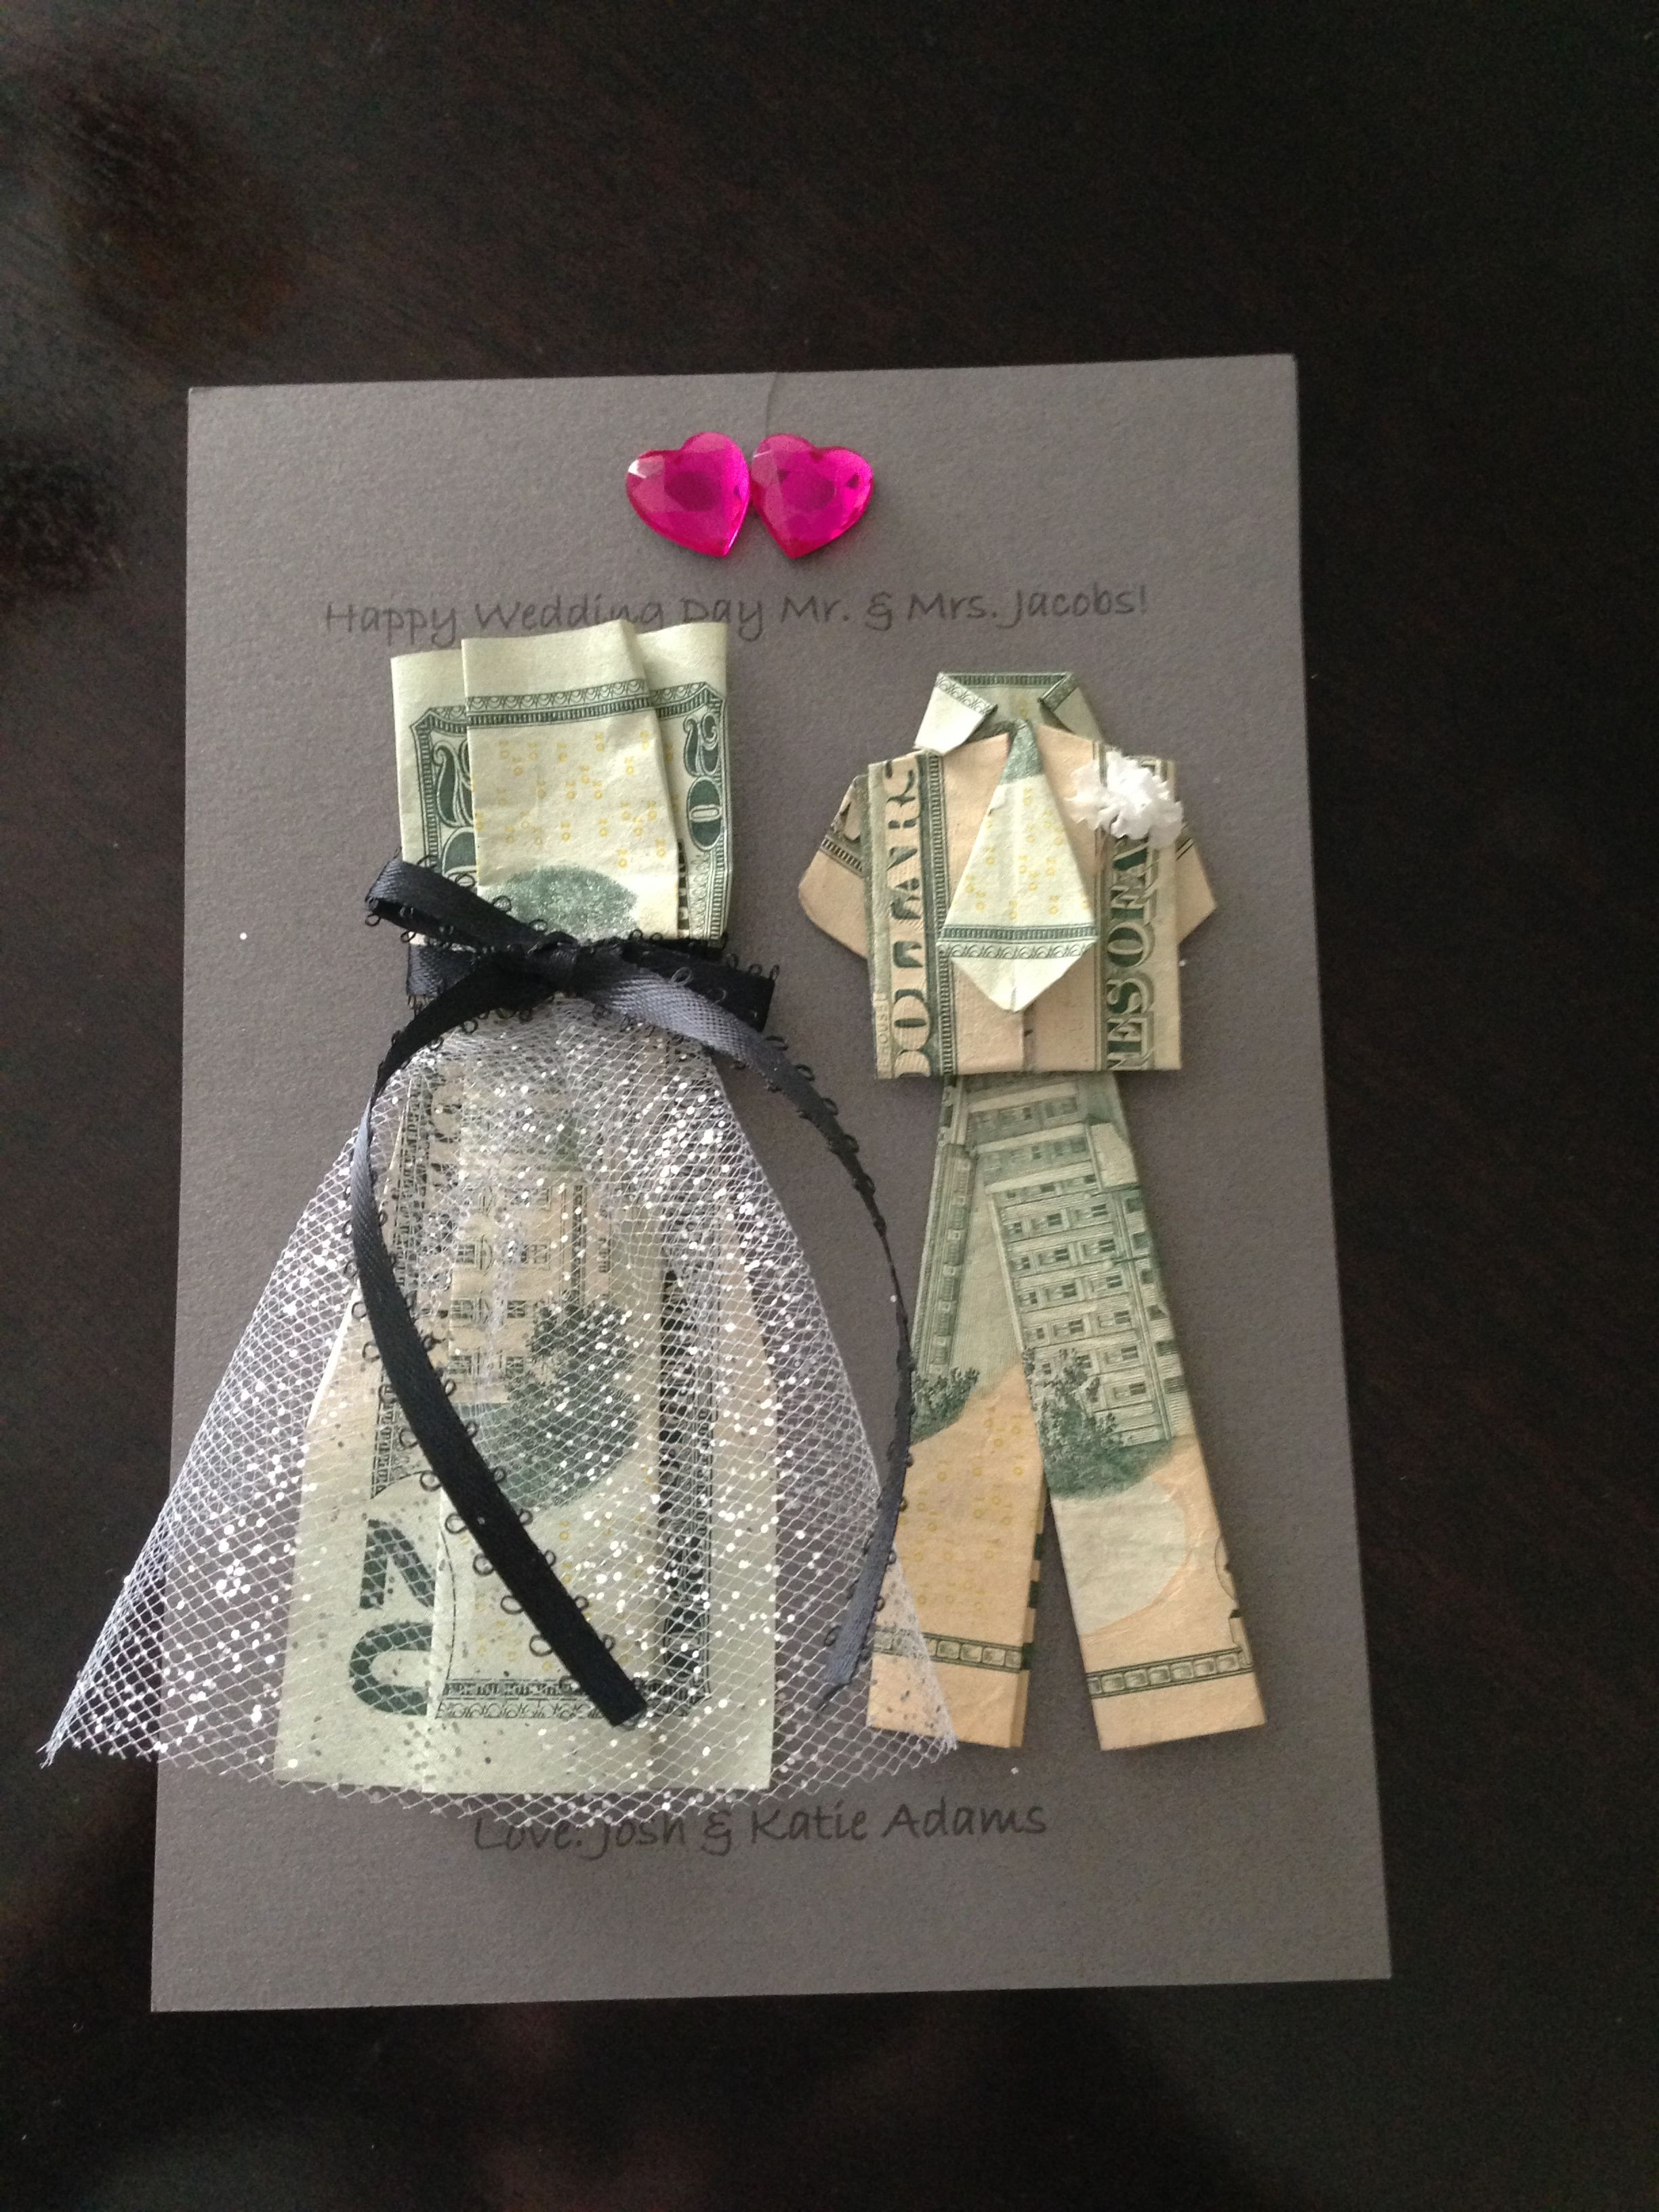 Best ideas about Wedding Gift Ideas For Bridegroom . Save or Pin Wedding Money Gifts on Pinterest Now.